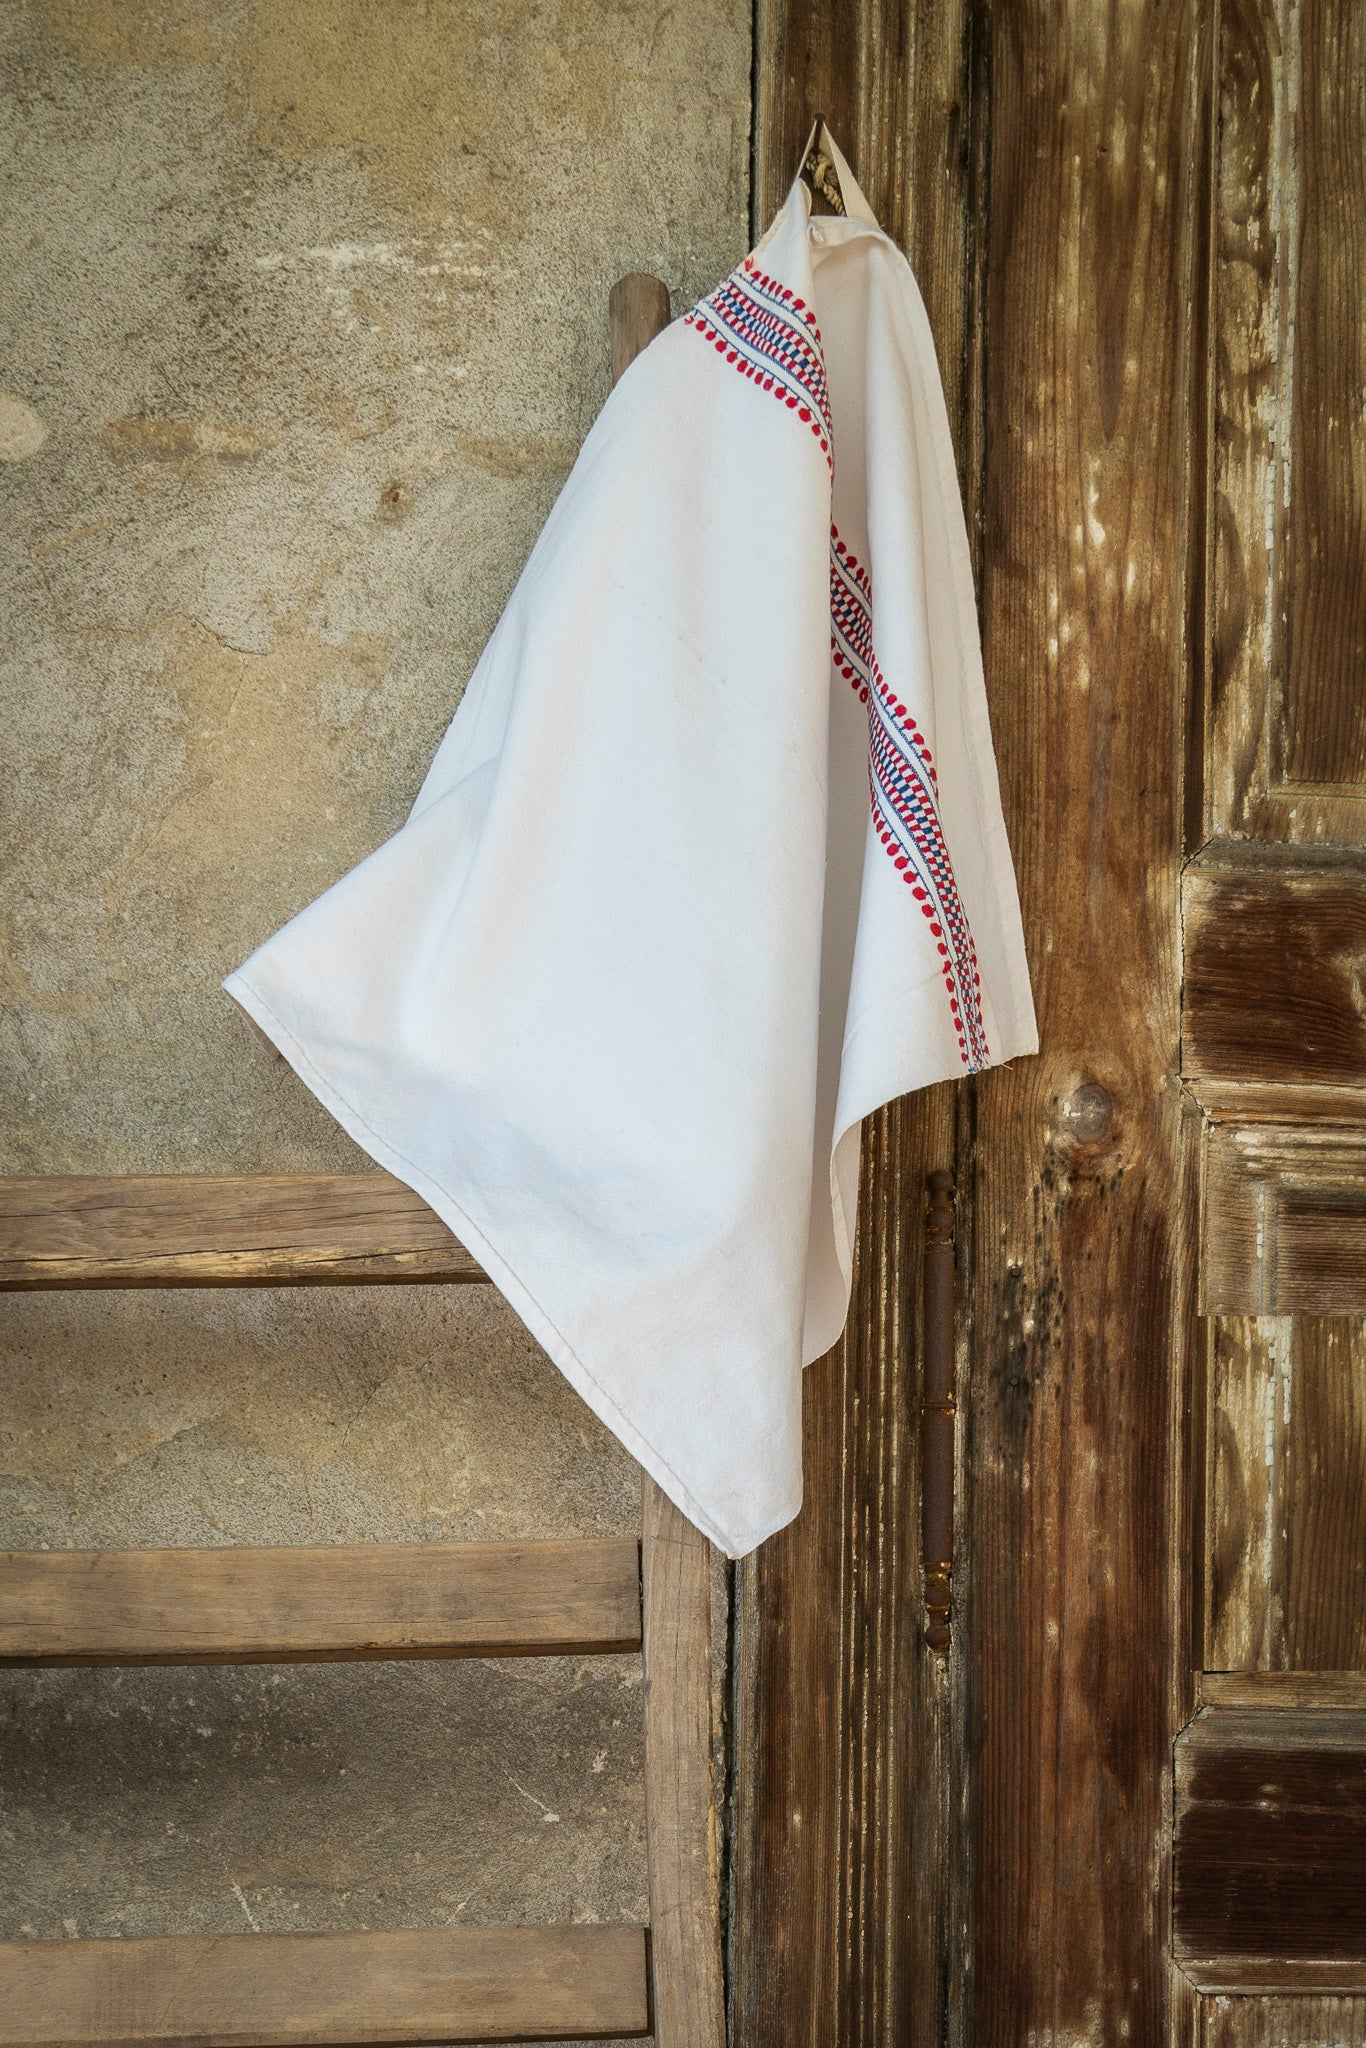 Towel: Handwoven antique Hungarian cotton